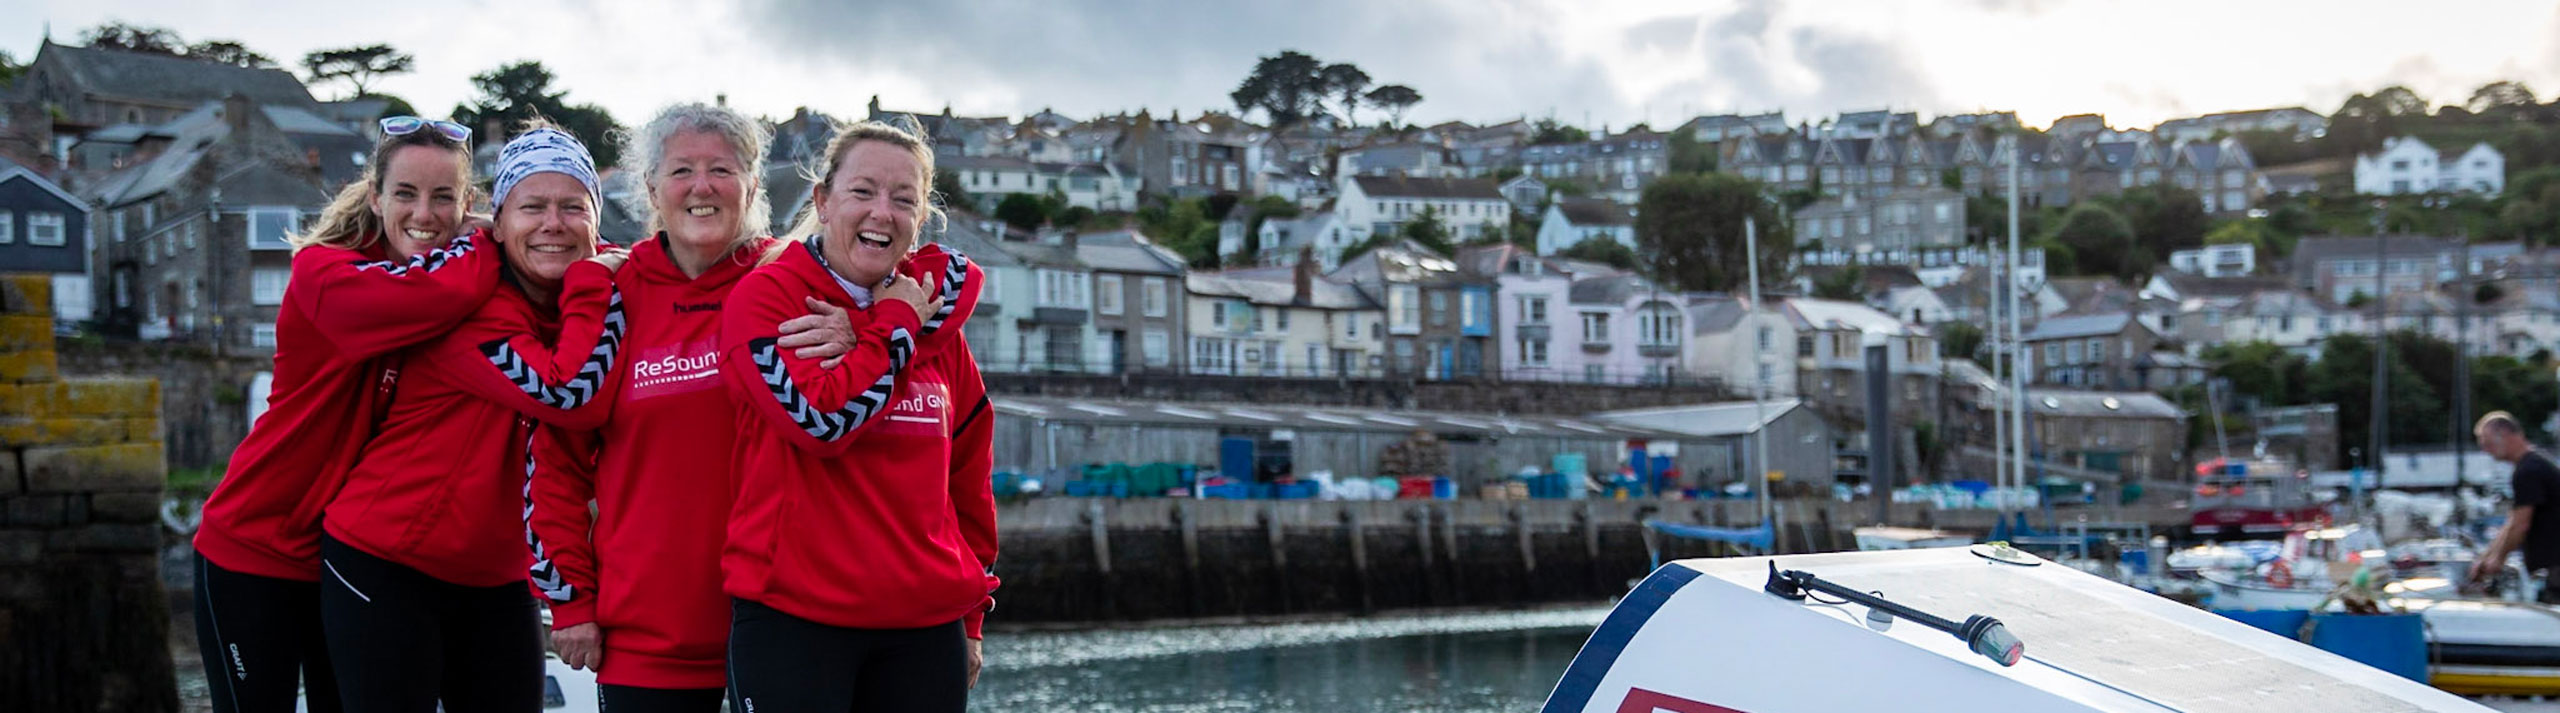 Mo O'Brien becomes the first deaf person to row across the Atlantic Ocean